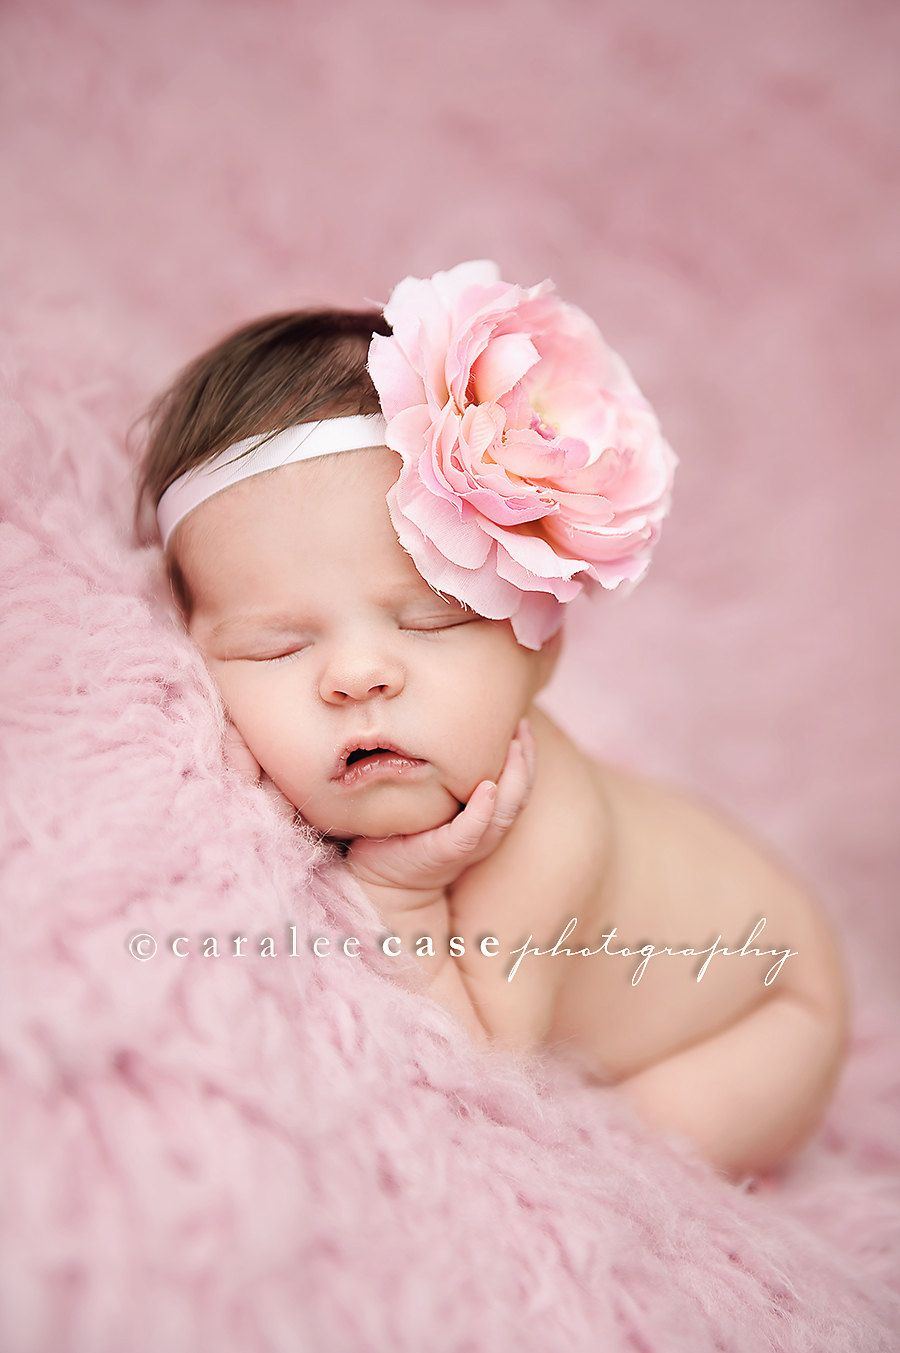 Macys baby hair accessories - Baby Headband Baby Girl Flower Headband Newborn Photography Prop Baby Hair Accessories